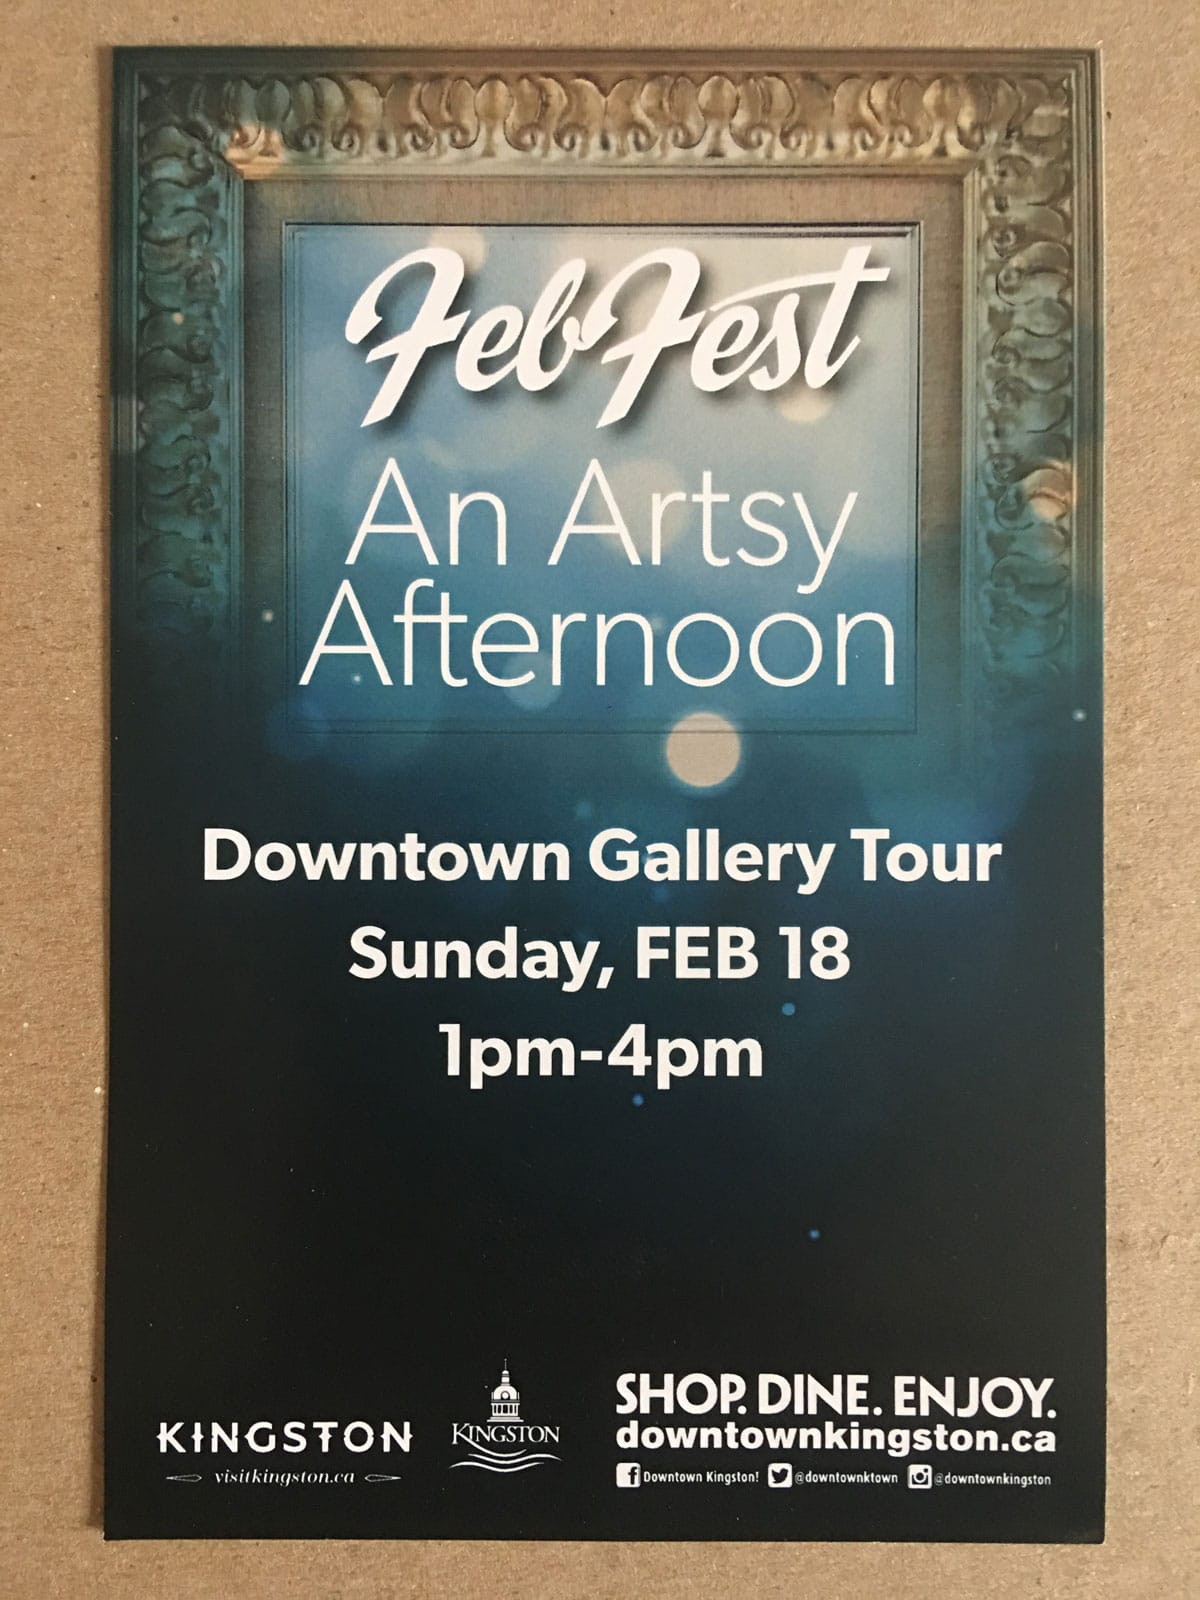 Downtown Art Gallery Tour